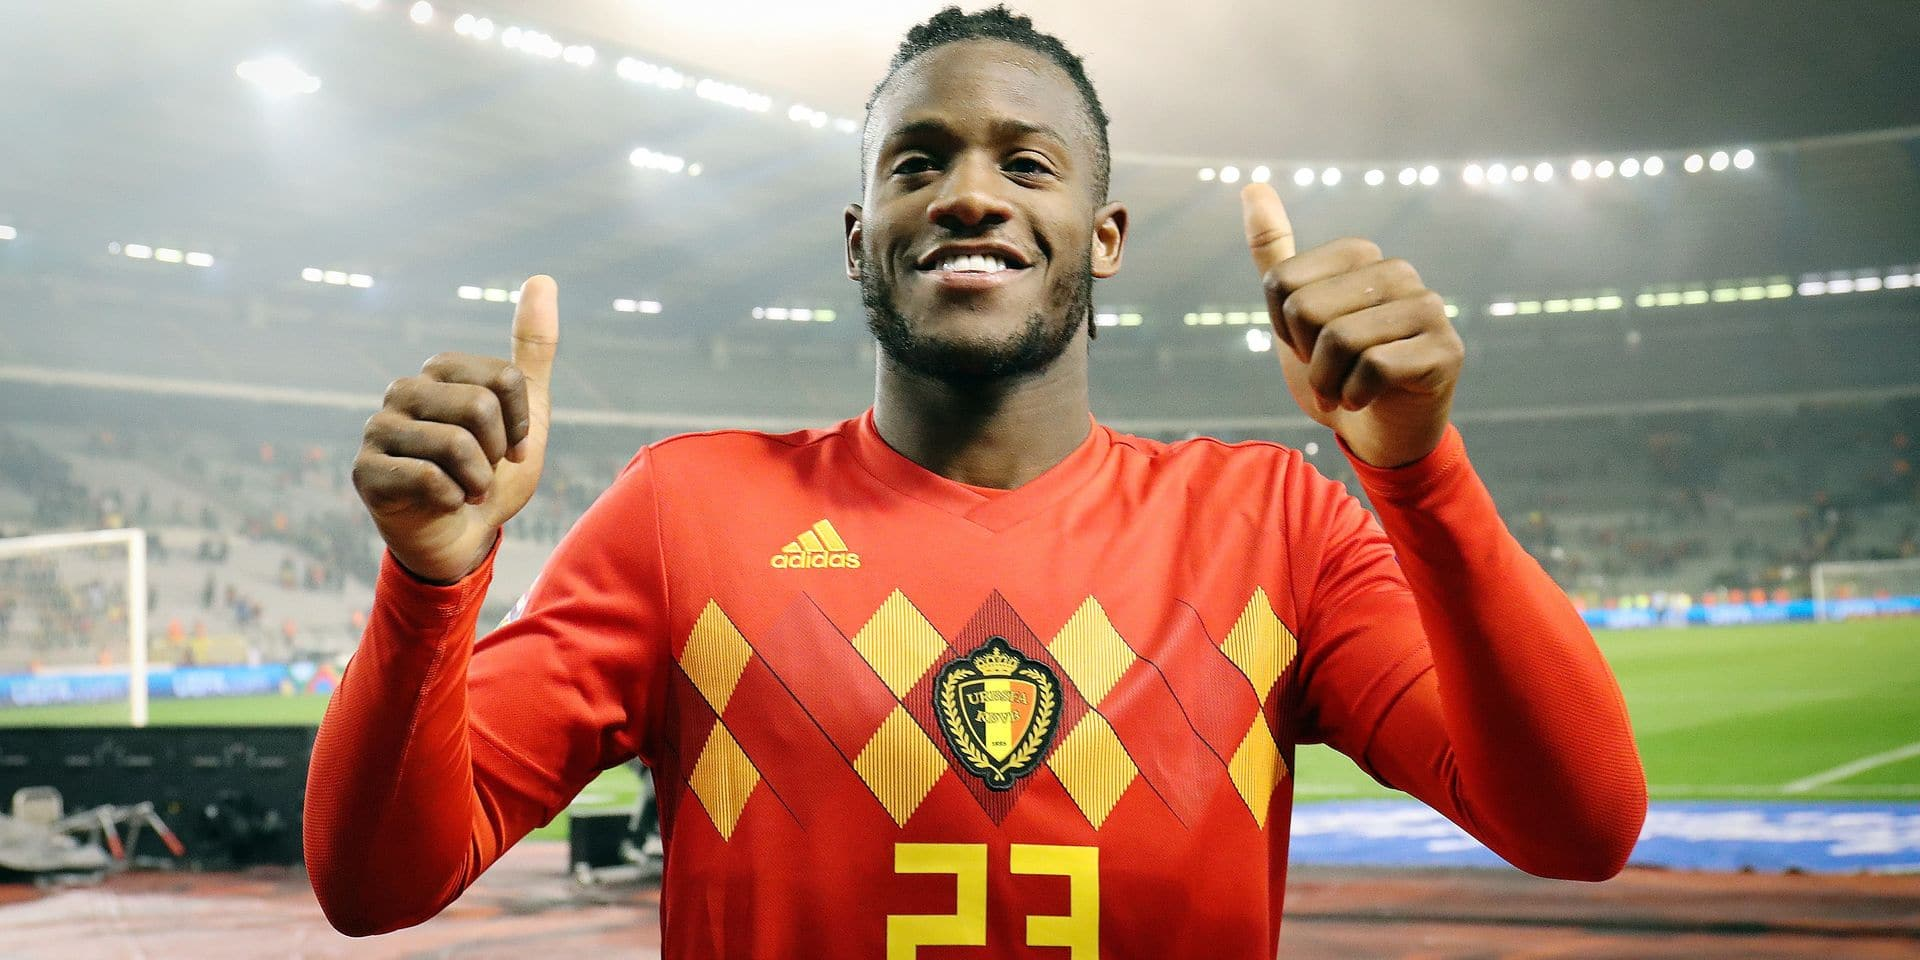 Belgium's Michy Batshuayi celebrates after winning the match between Belgian national team the Red Devils and Iceland, in Brussels, Thursday 15 November 2018, in the Nations League. BELGA PHOTO VIRGINIE LEFOUR